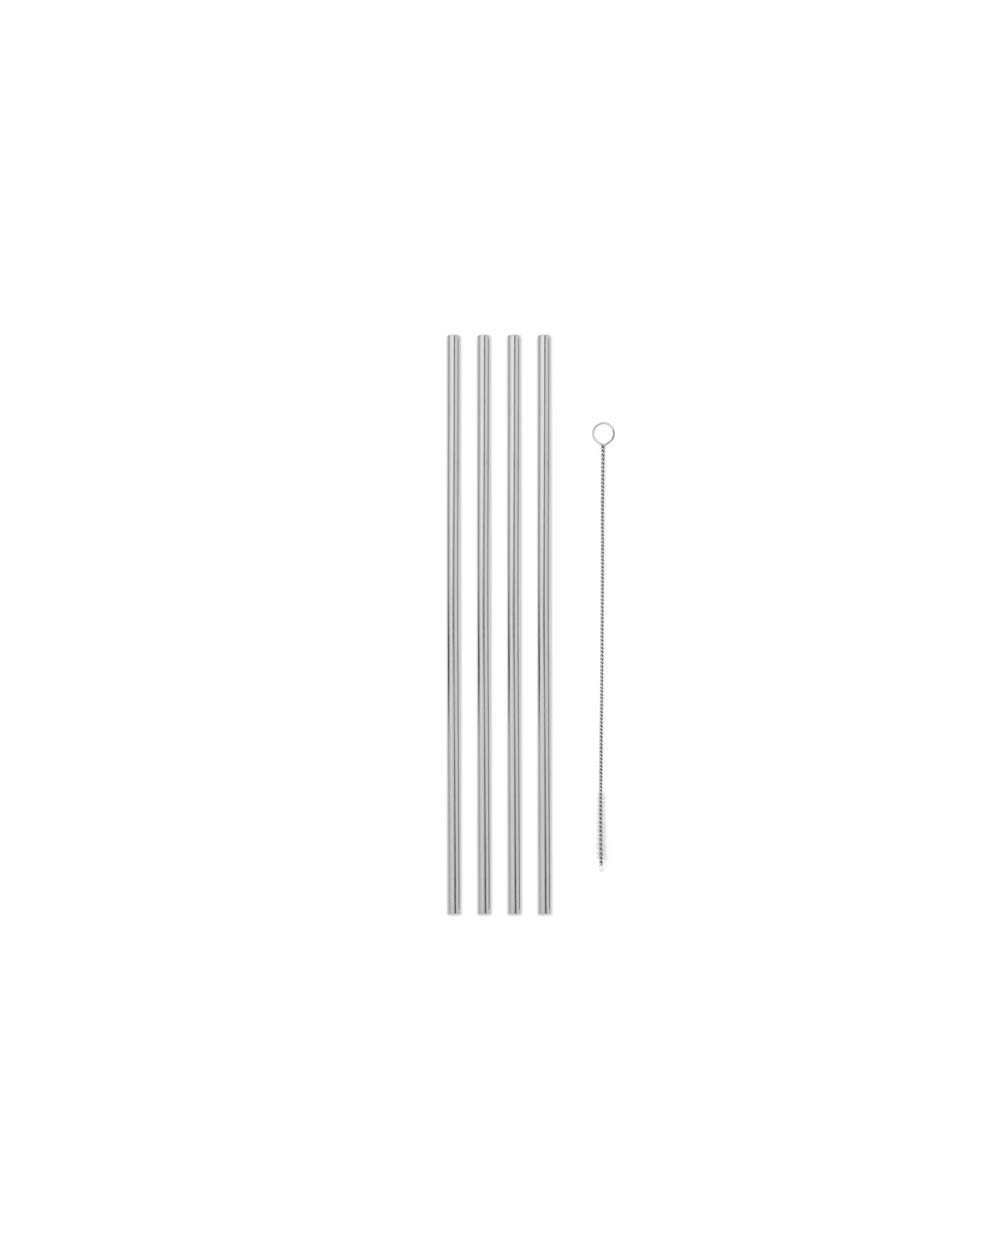 W&P WP-PSS-10 Porter Metal Straws w/ Cleaner, Reusable, Eco-Friendly, Sustainable, Stainless Steel, Silver, 10 inch, Set of 4